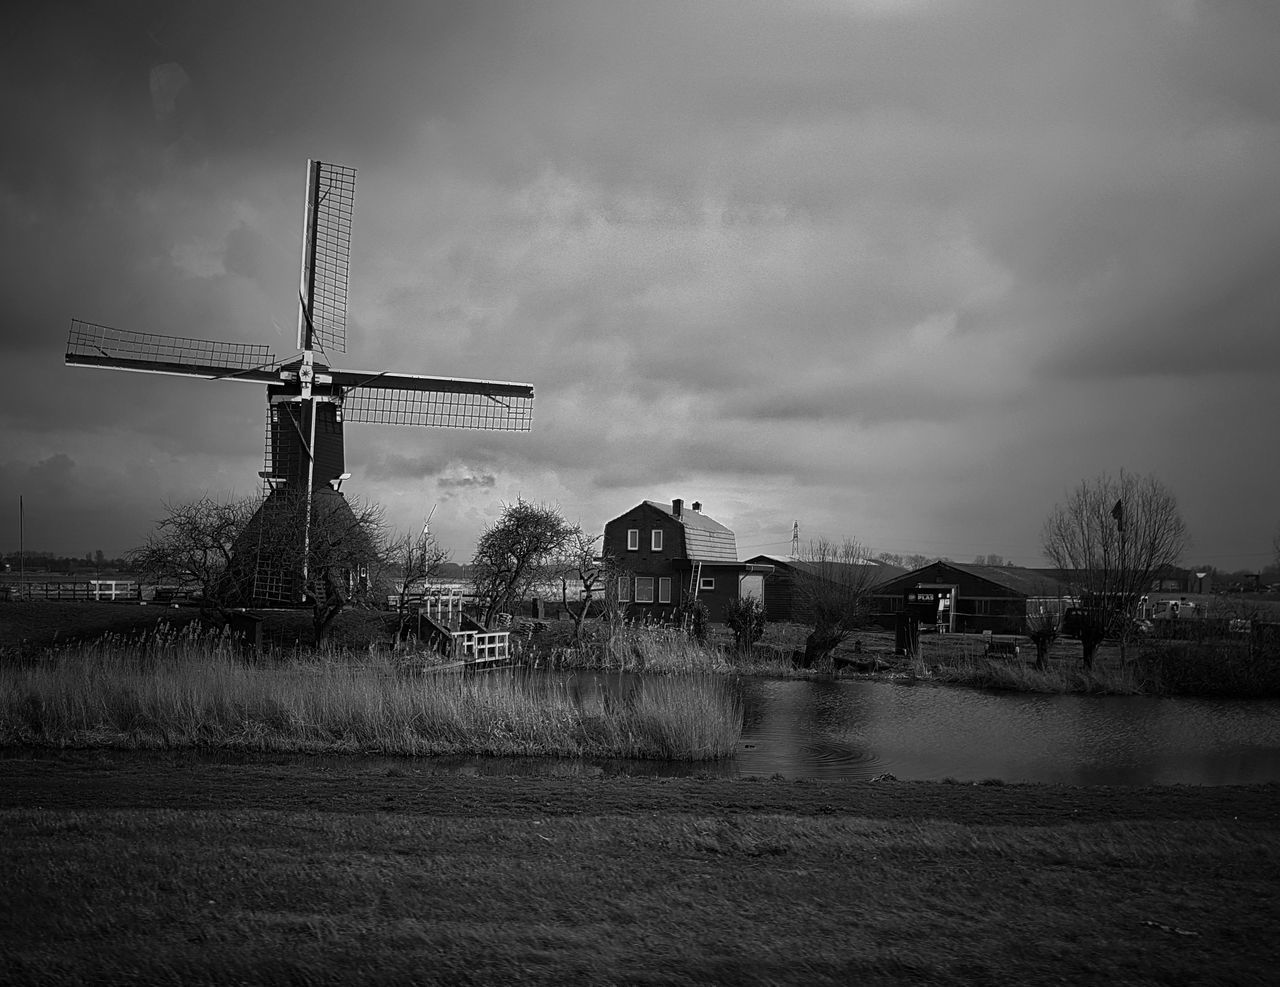 EyeEmBestPics Capture The Moment Eye4photography  Dutch Countyside Black And White Blackandwhite Sgs7edge On The Road Drivebyphotography Working Windmill Water Clouds Windmill Photography Simple Photography Motion Snapspeed On The Road Again Black And White Collection